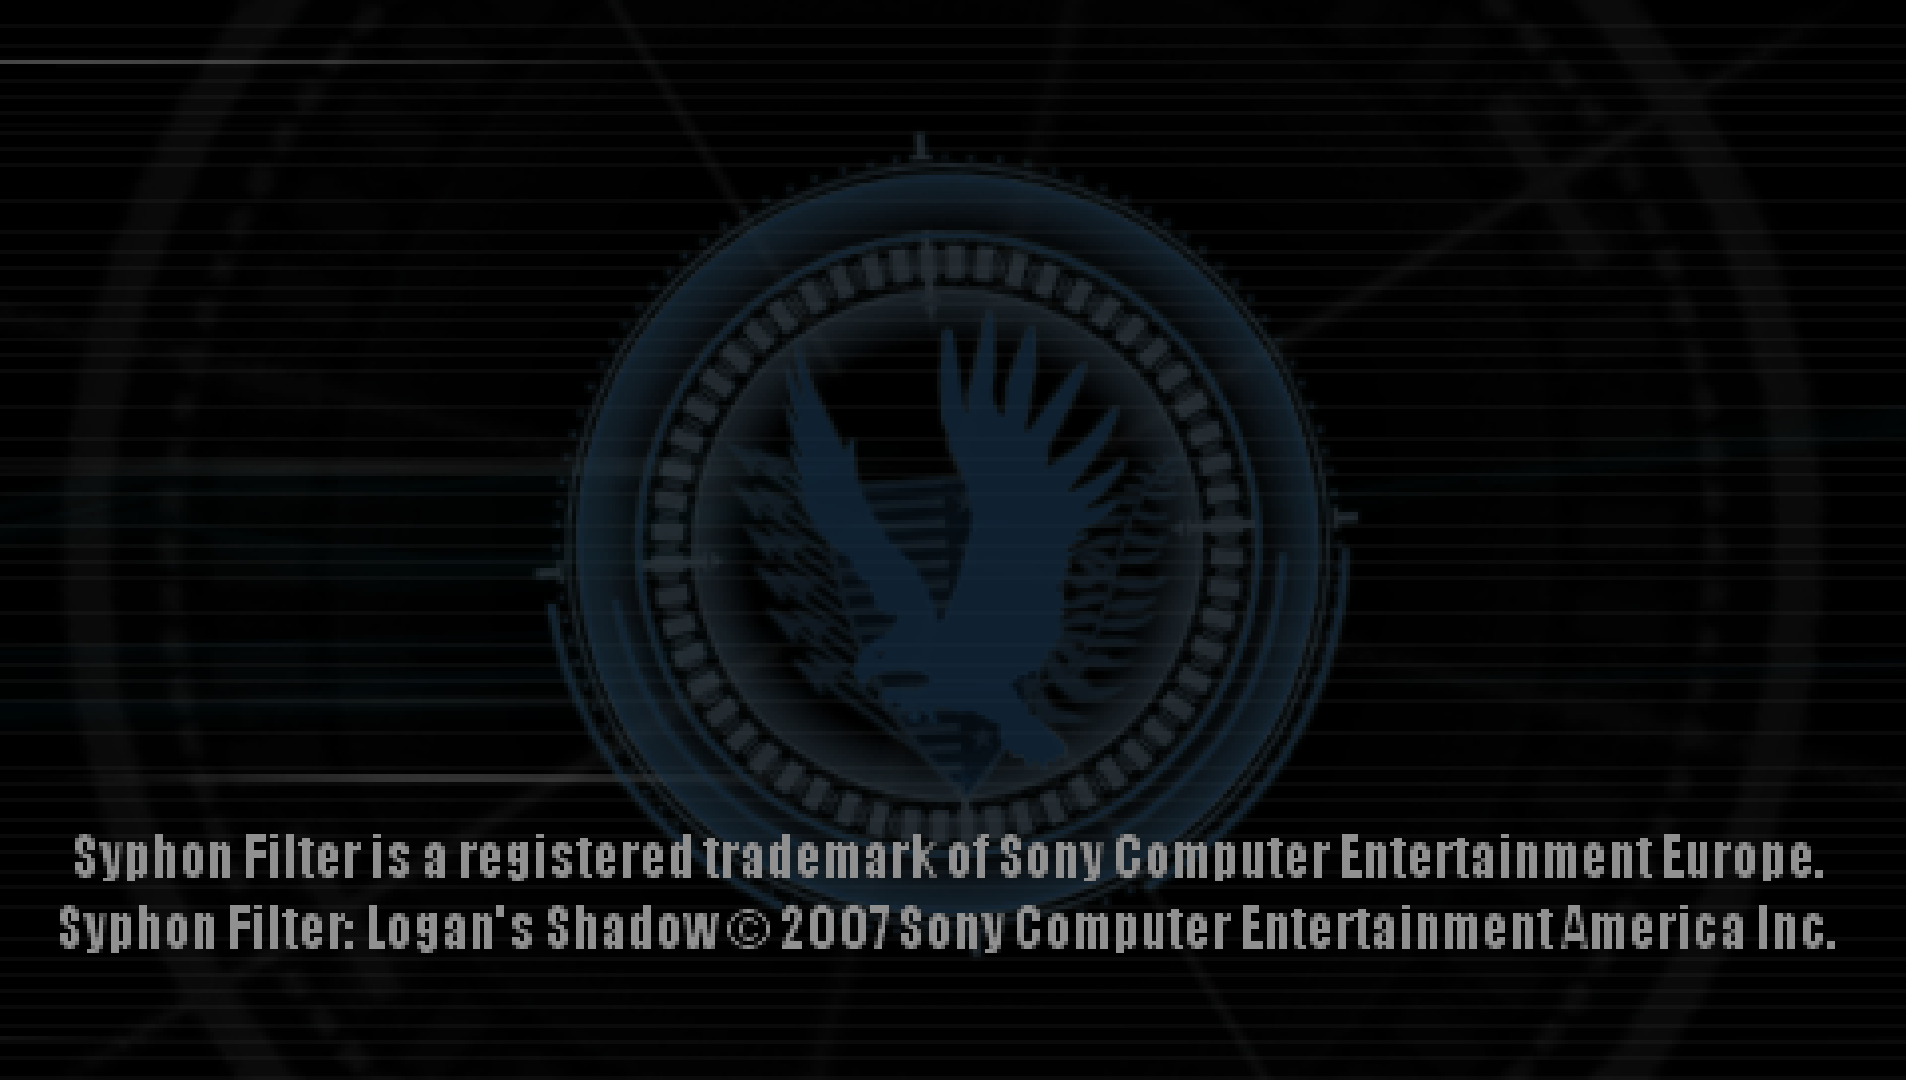 https://s3.eu-west-3.amazonaws.com/games.anthony-dessalles.com/Syphon Filter Logan's Shadow PSP 2021 - Screenshots/Syphon Filter Logan's Shadow-210111-120036.png